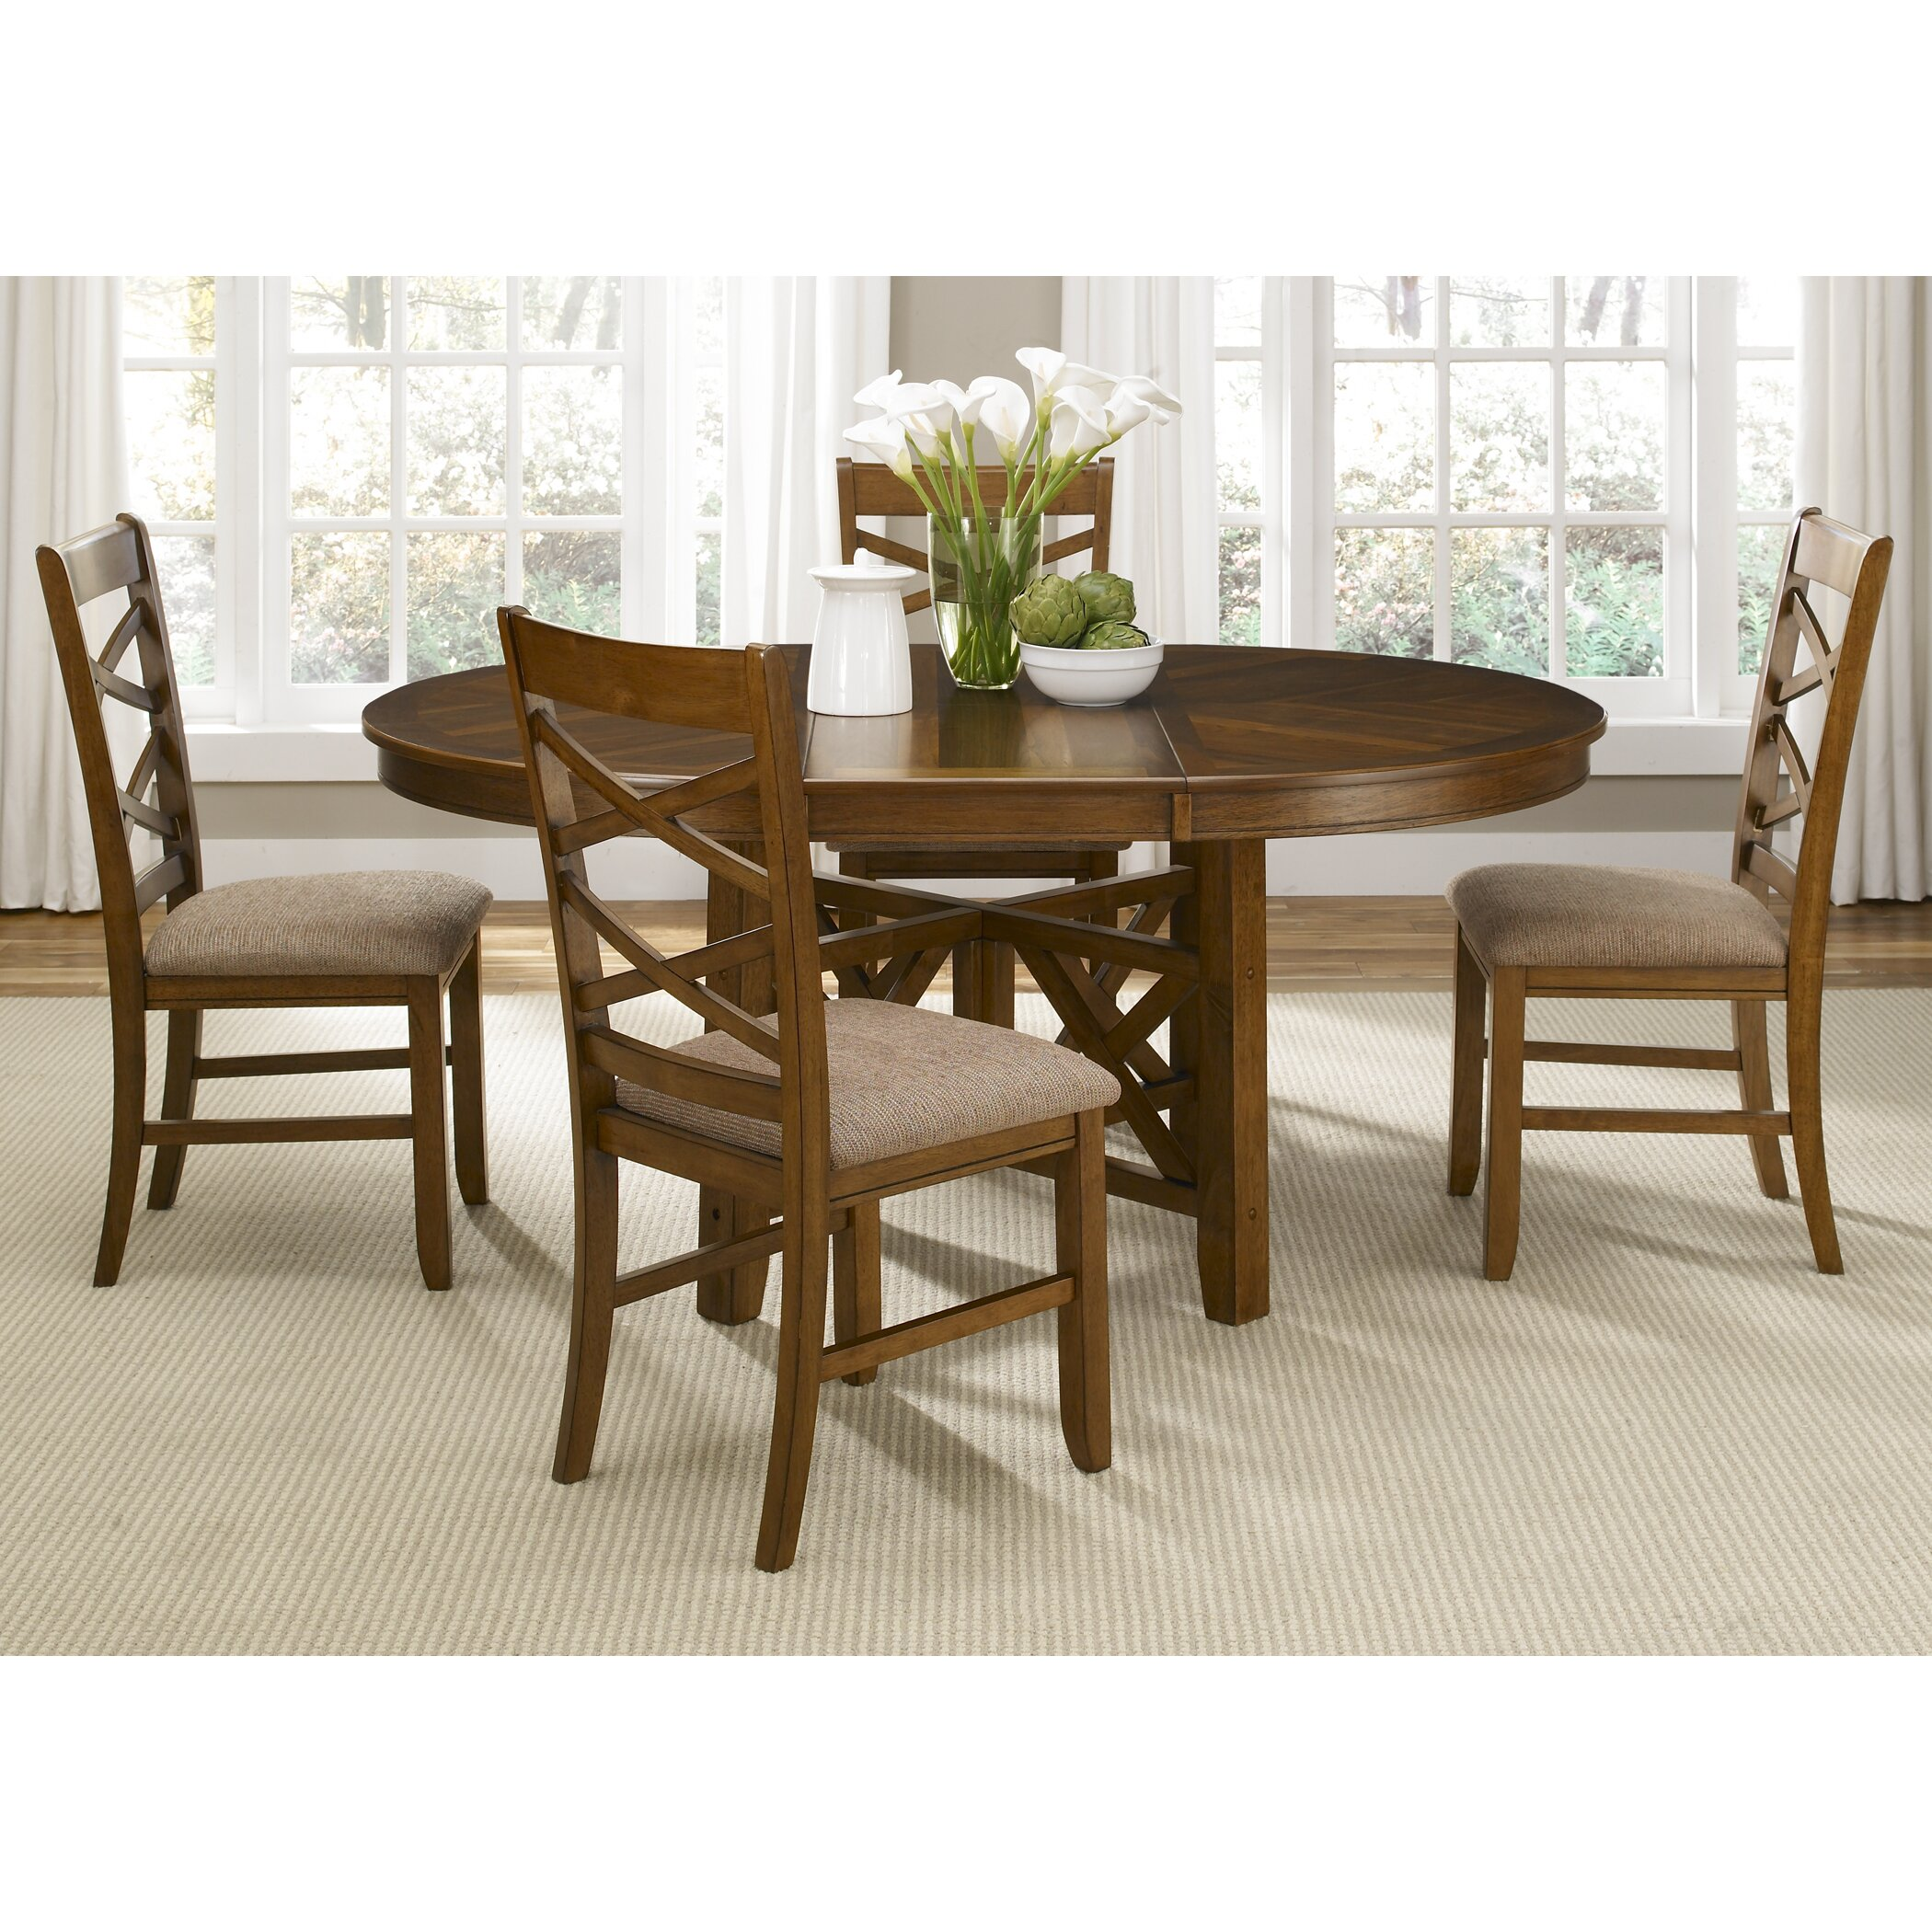 Liberty furniture bistro 5 piece dining set reviews for 5 piece dining room sets